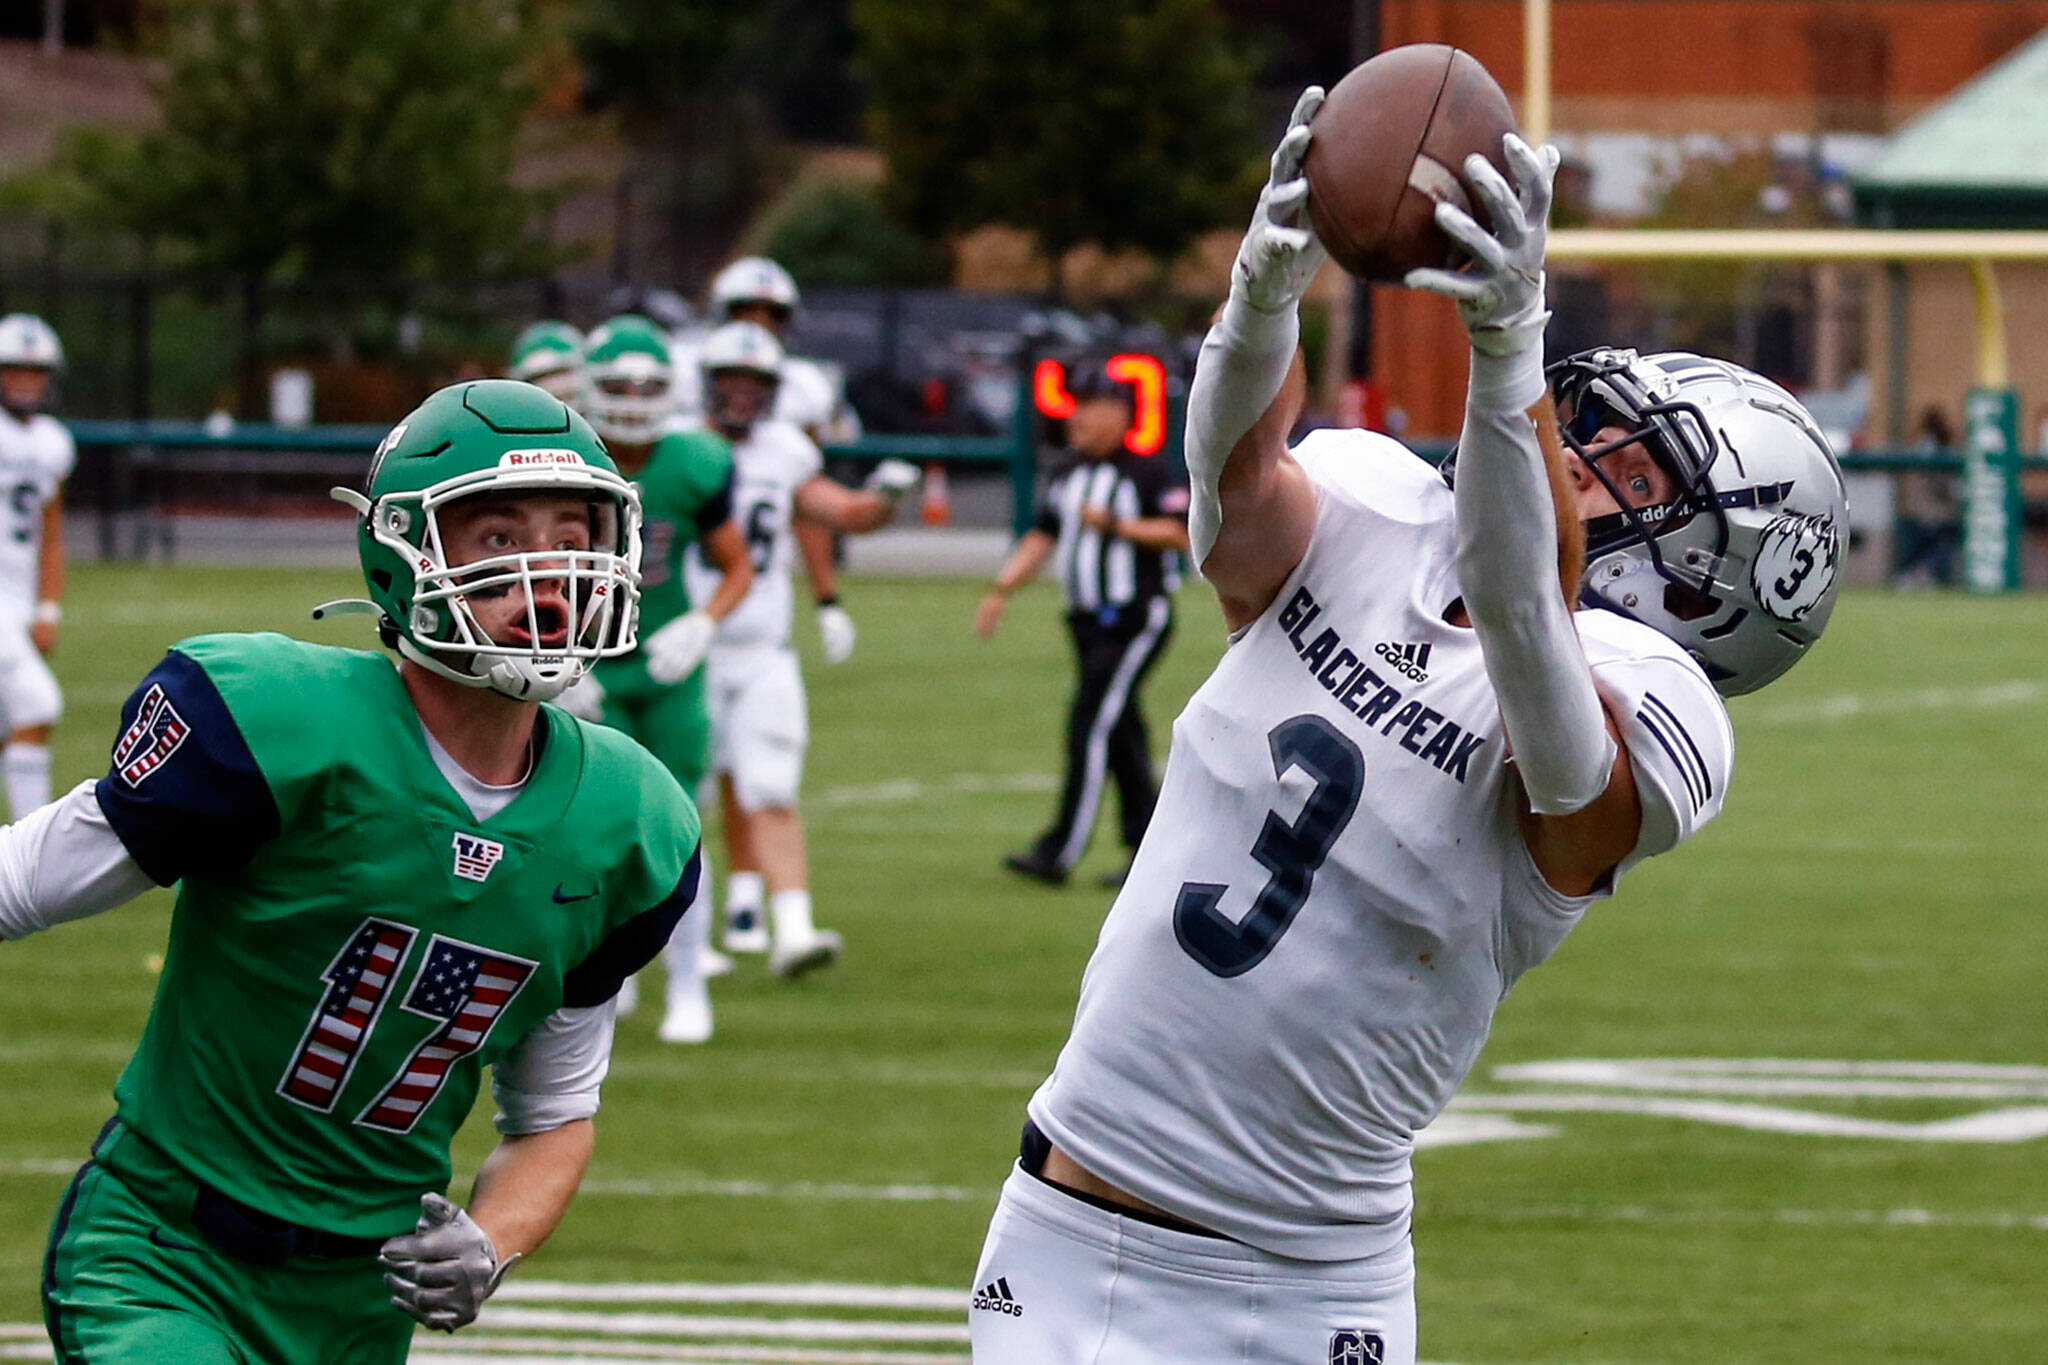 Glacier Peak's Ashton Olson makes a touchdown reception with Woodinville's Jeffrey Perran trailing during a game Thursday evening at Pop Keeney Stadium in Bothell. (Kevin Clark / The Herald)